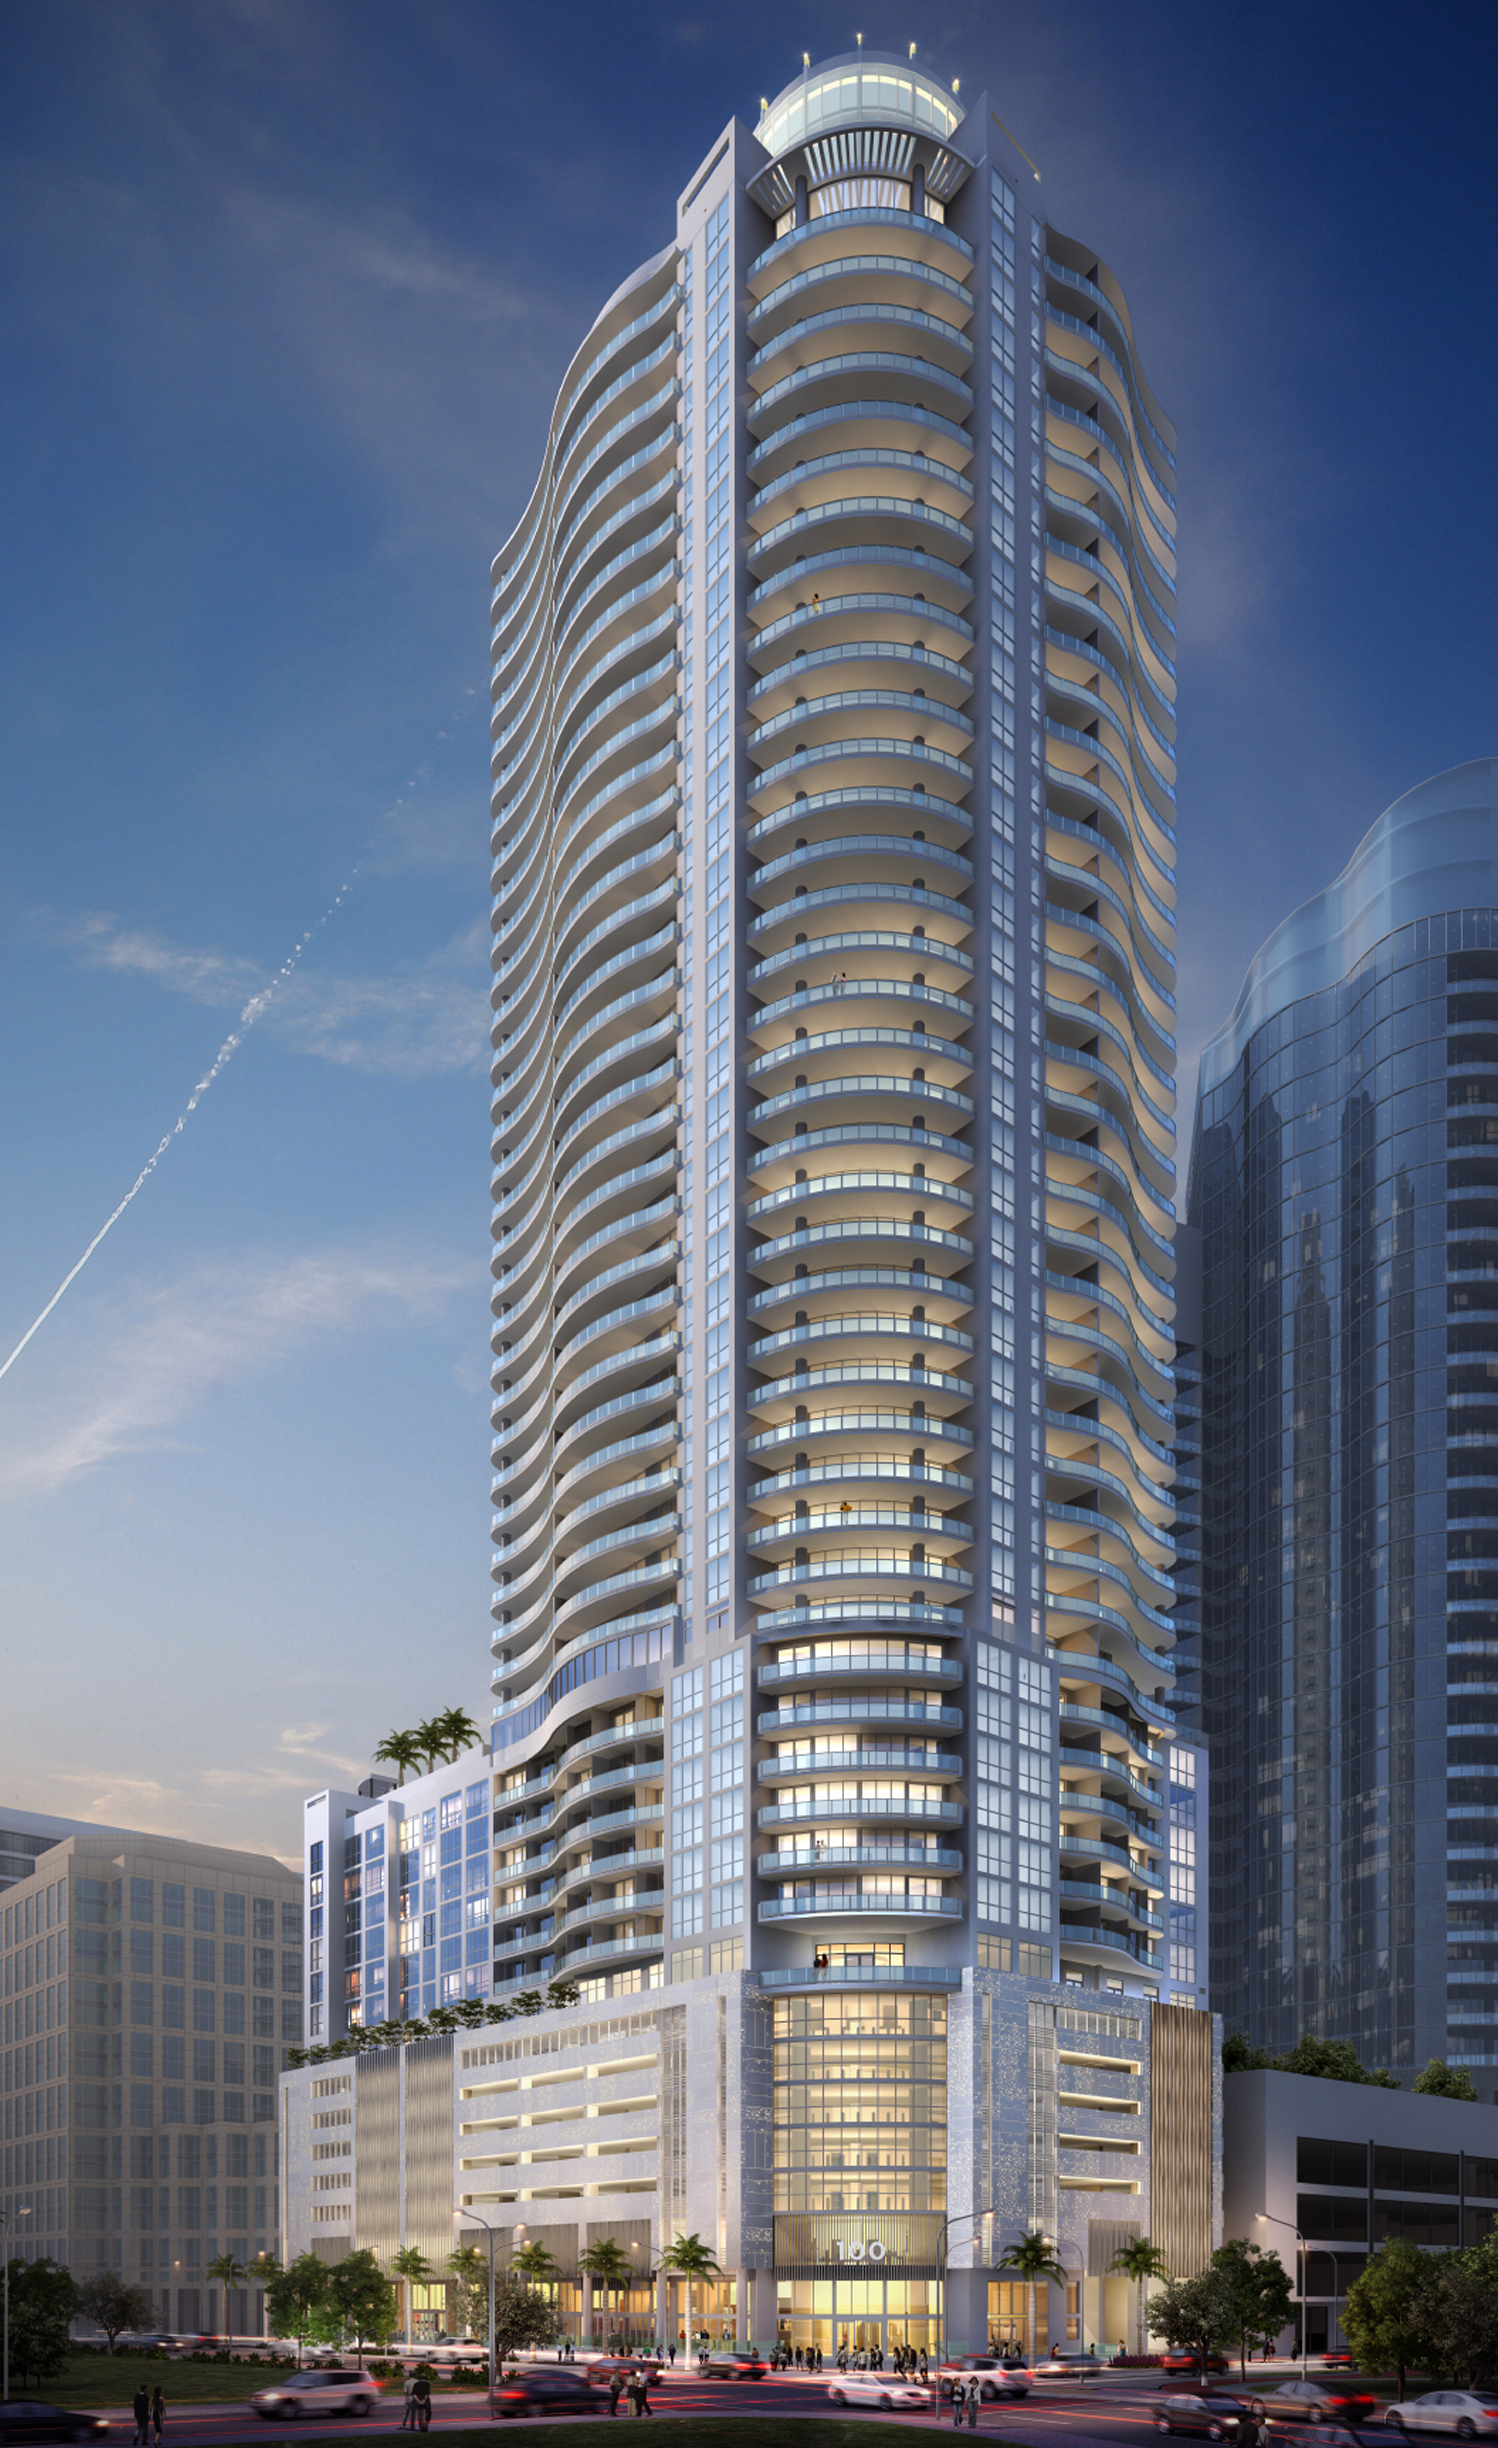 Designed by SB Architects, the property is set to be the tallest building in downtown Fort Lauderdale, with 46 levels.